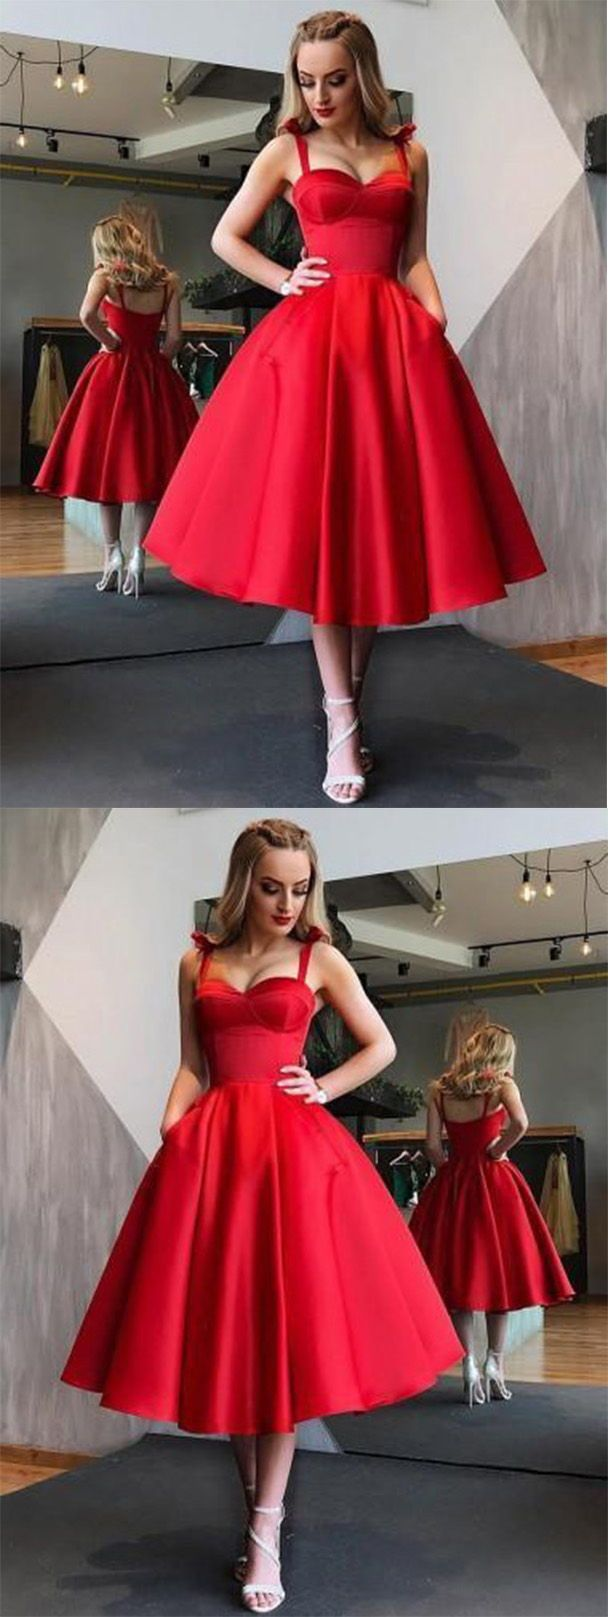 Red bowknot straps short prom dress cut out back homecoming dress